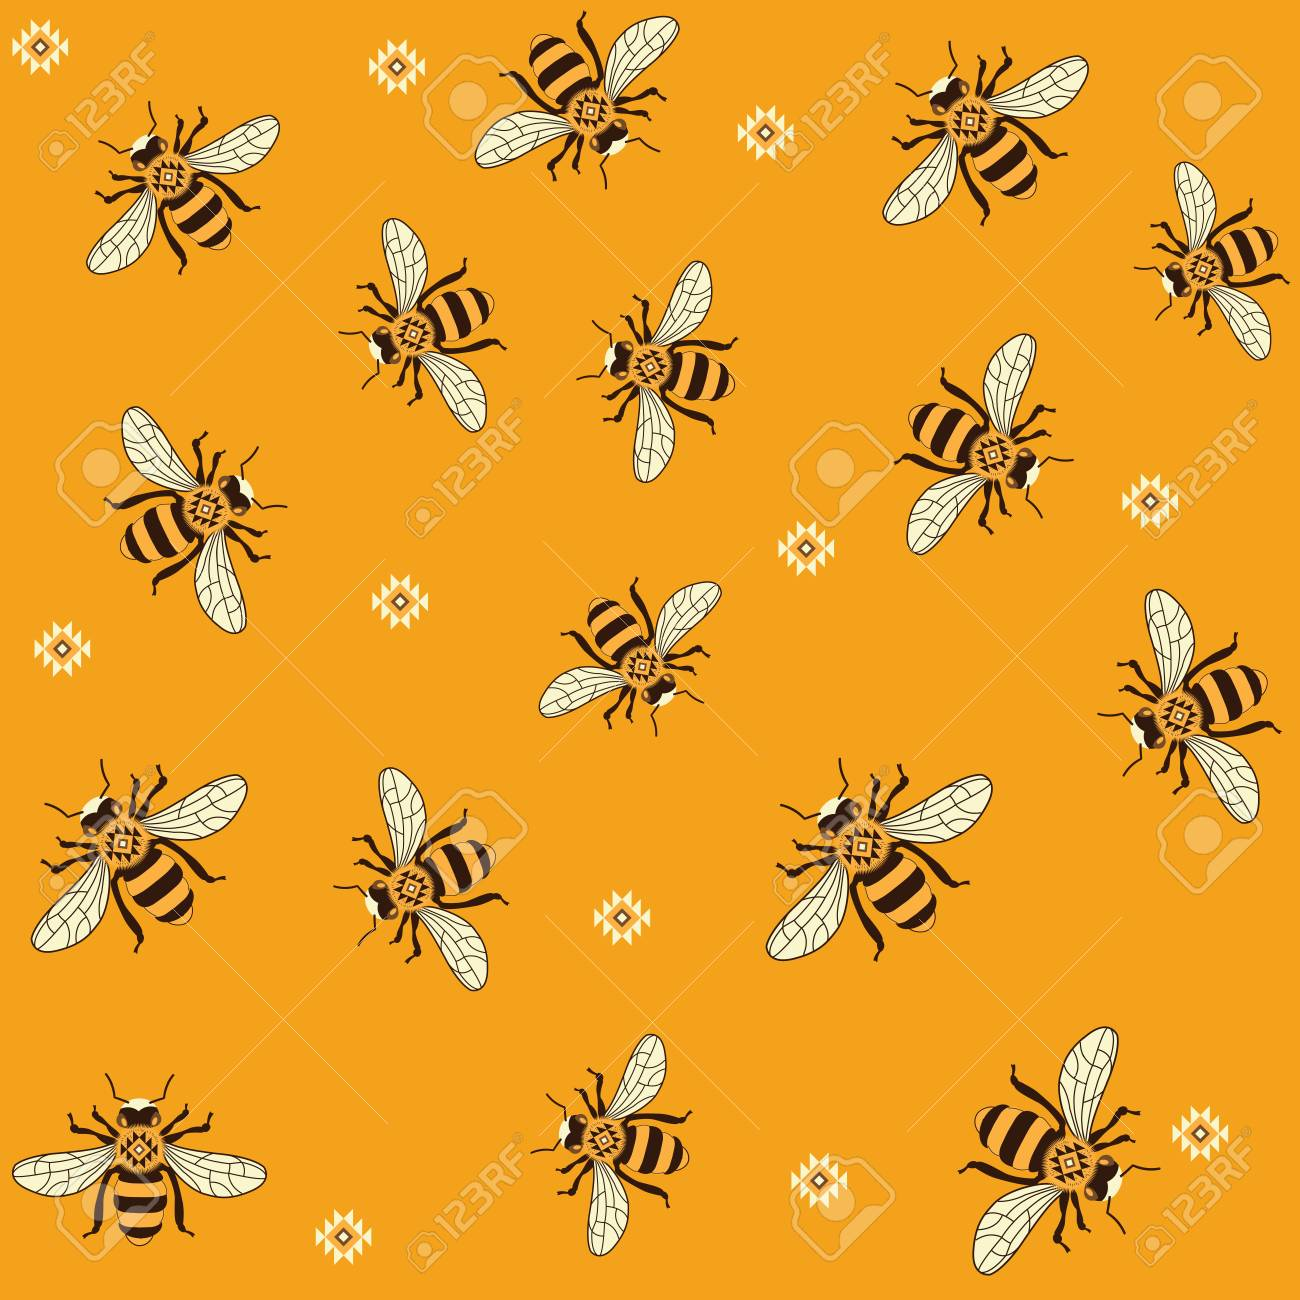 photo about Bee Printable named Seamless vector practice with honey bees. Bee habit printable